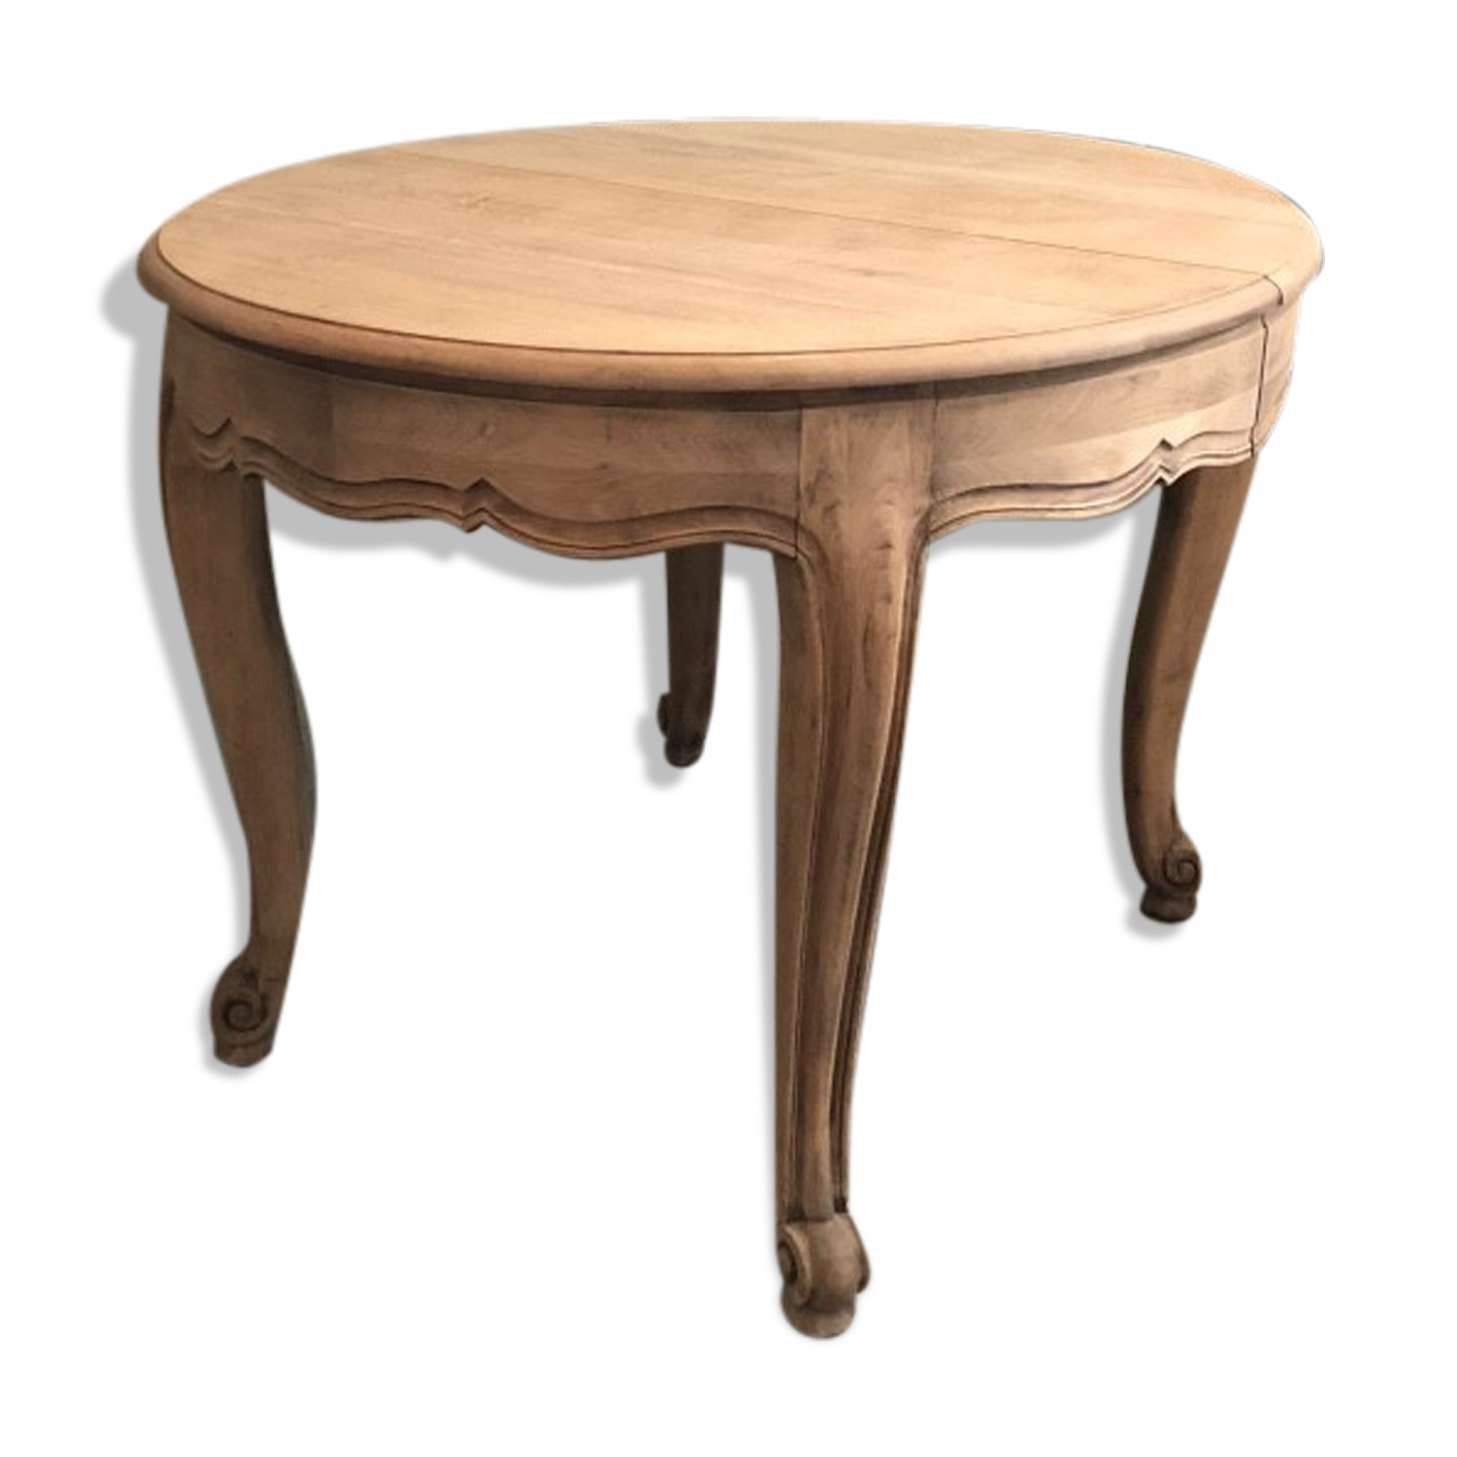 table ronde chene massif interesting table ronde en chene avec rallonge table ronde en pin. Black Bedroom Furniture Sets. Home Design Ideas